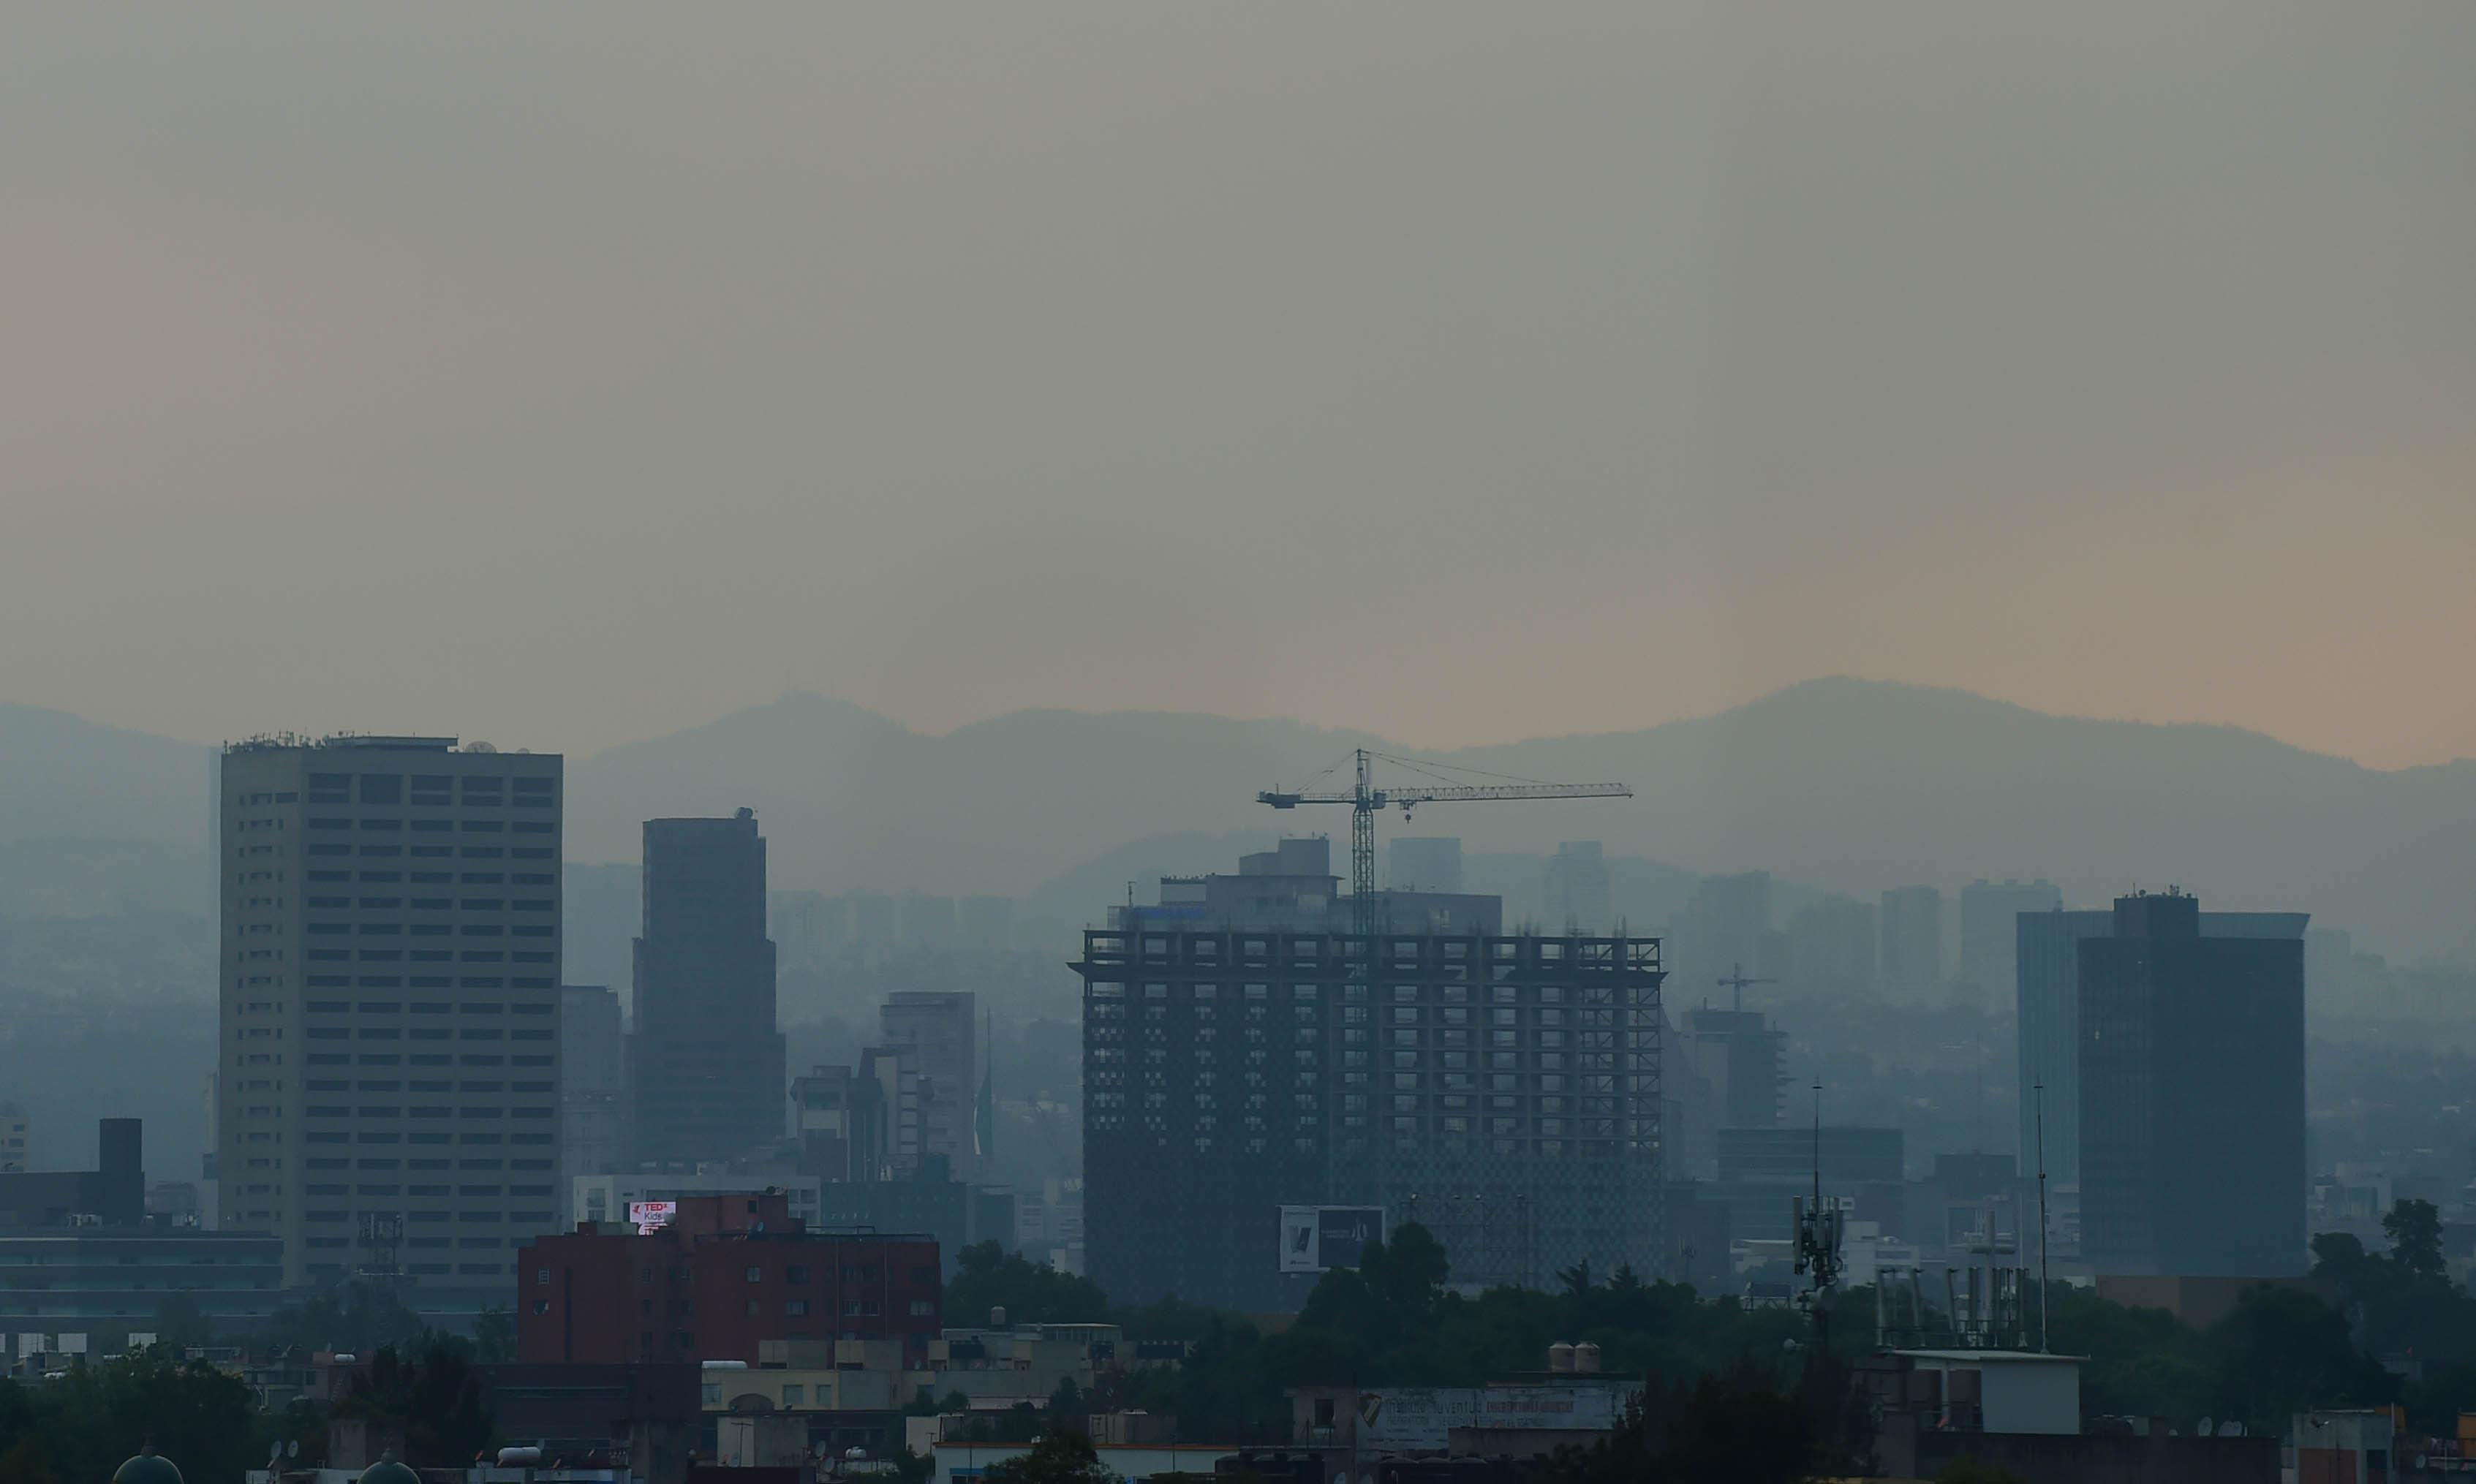 pollution in bahrain Air pollution in india air pollution in india is quite a serious issue with the major sources being fuelwood and biomass burning, fuel adulteration, vehicle emission and traffic congestion.